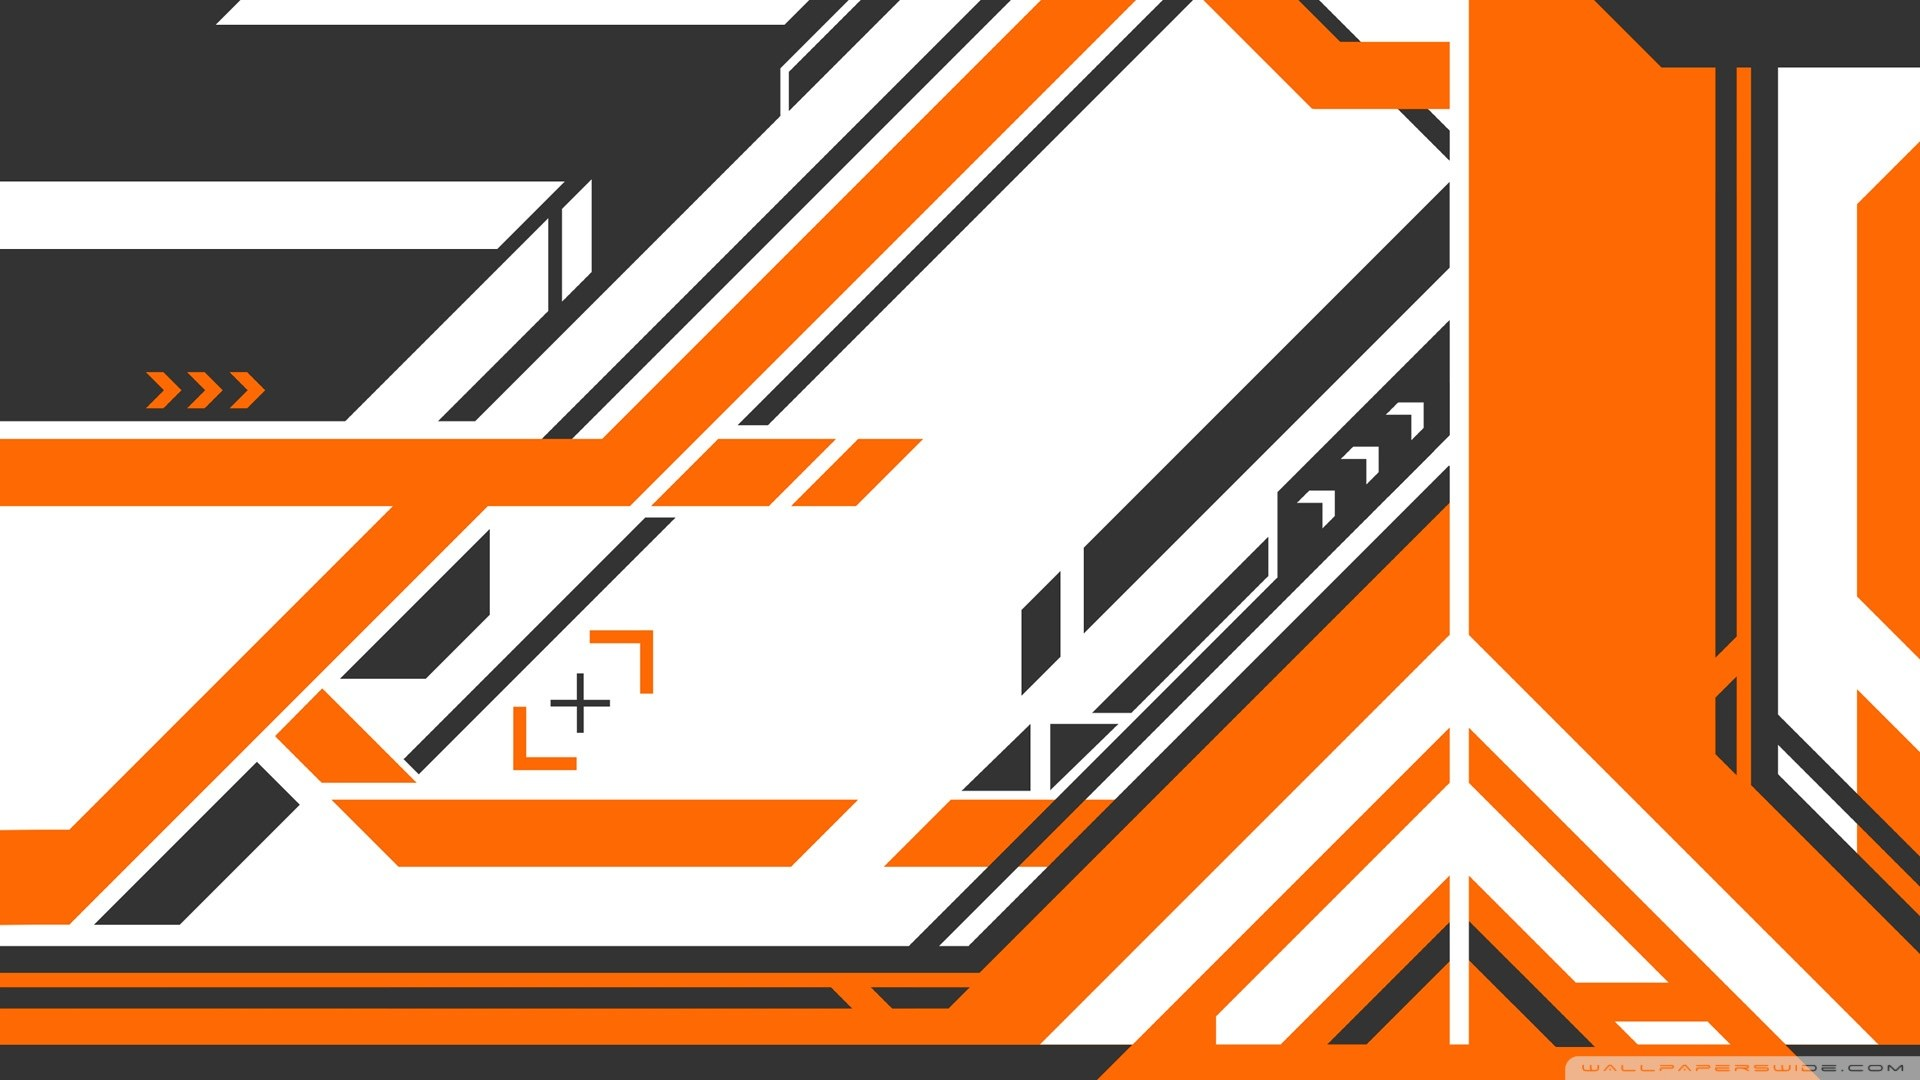 Here's the link: Asiimov and Hyperbeast